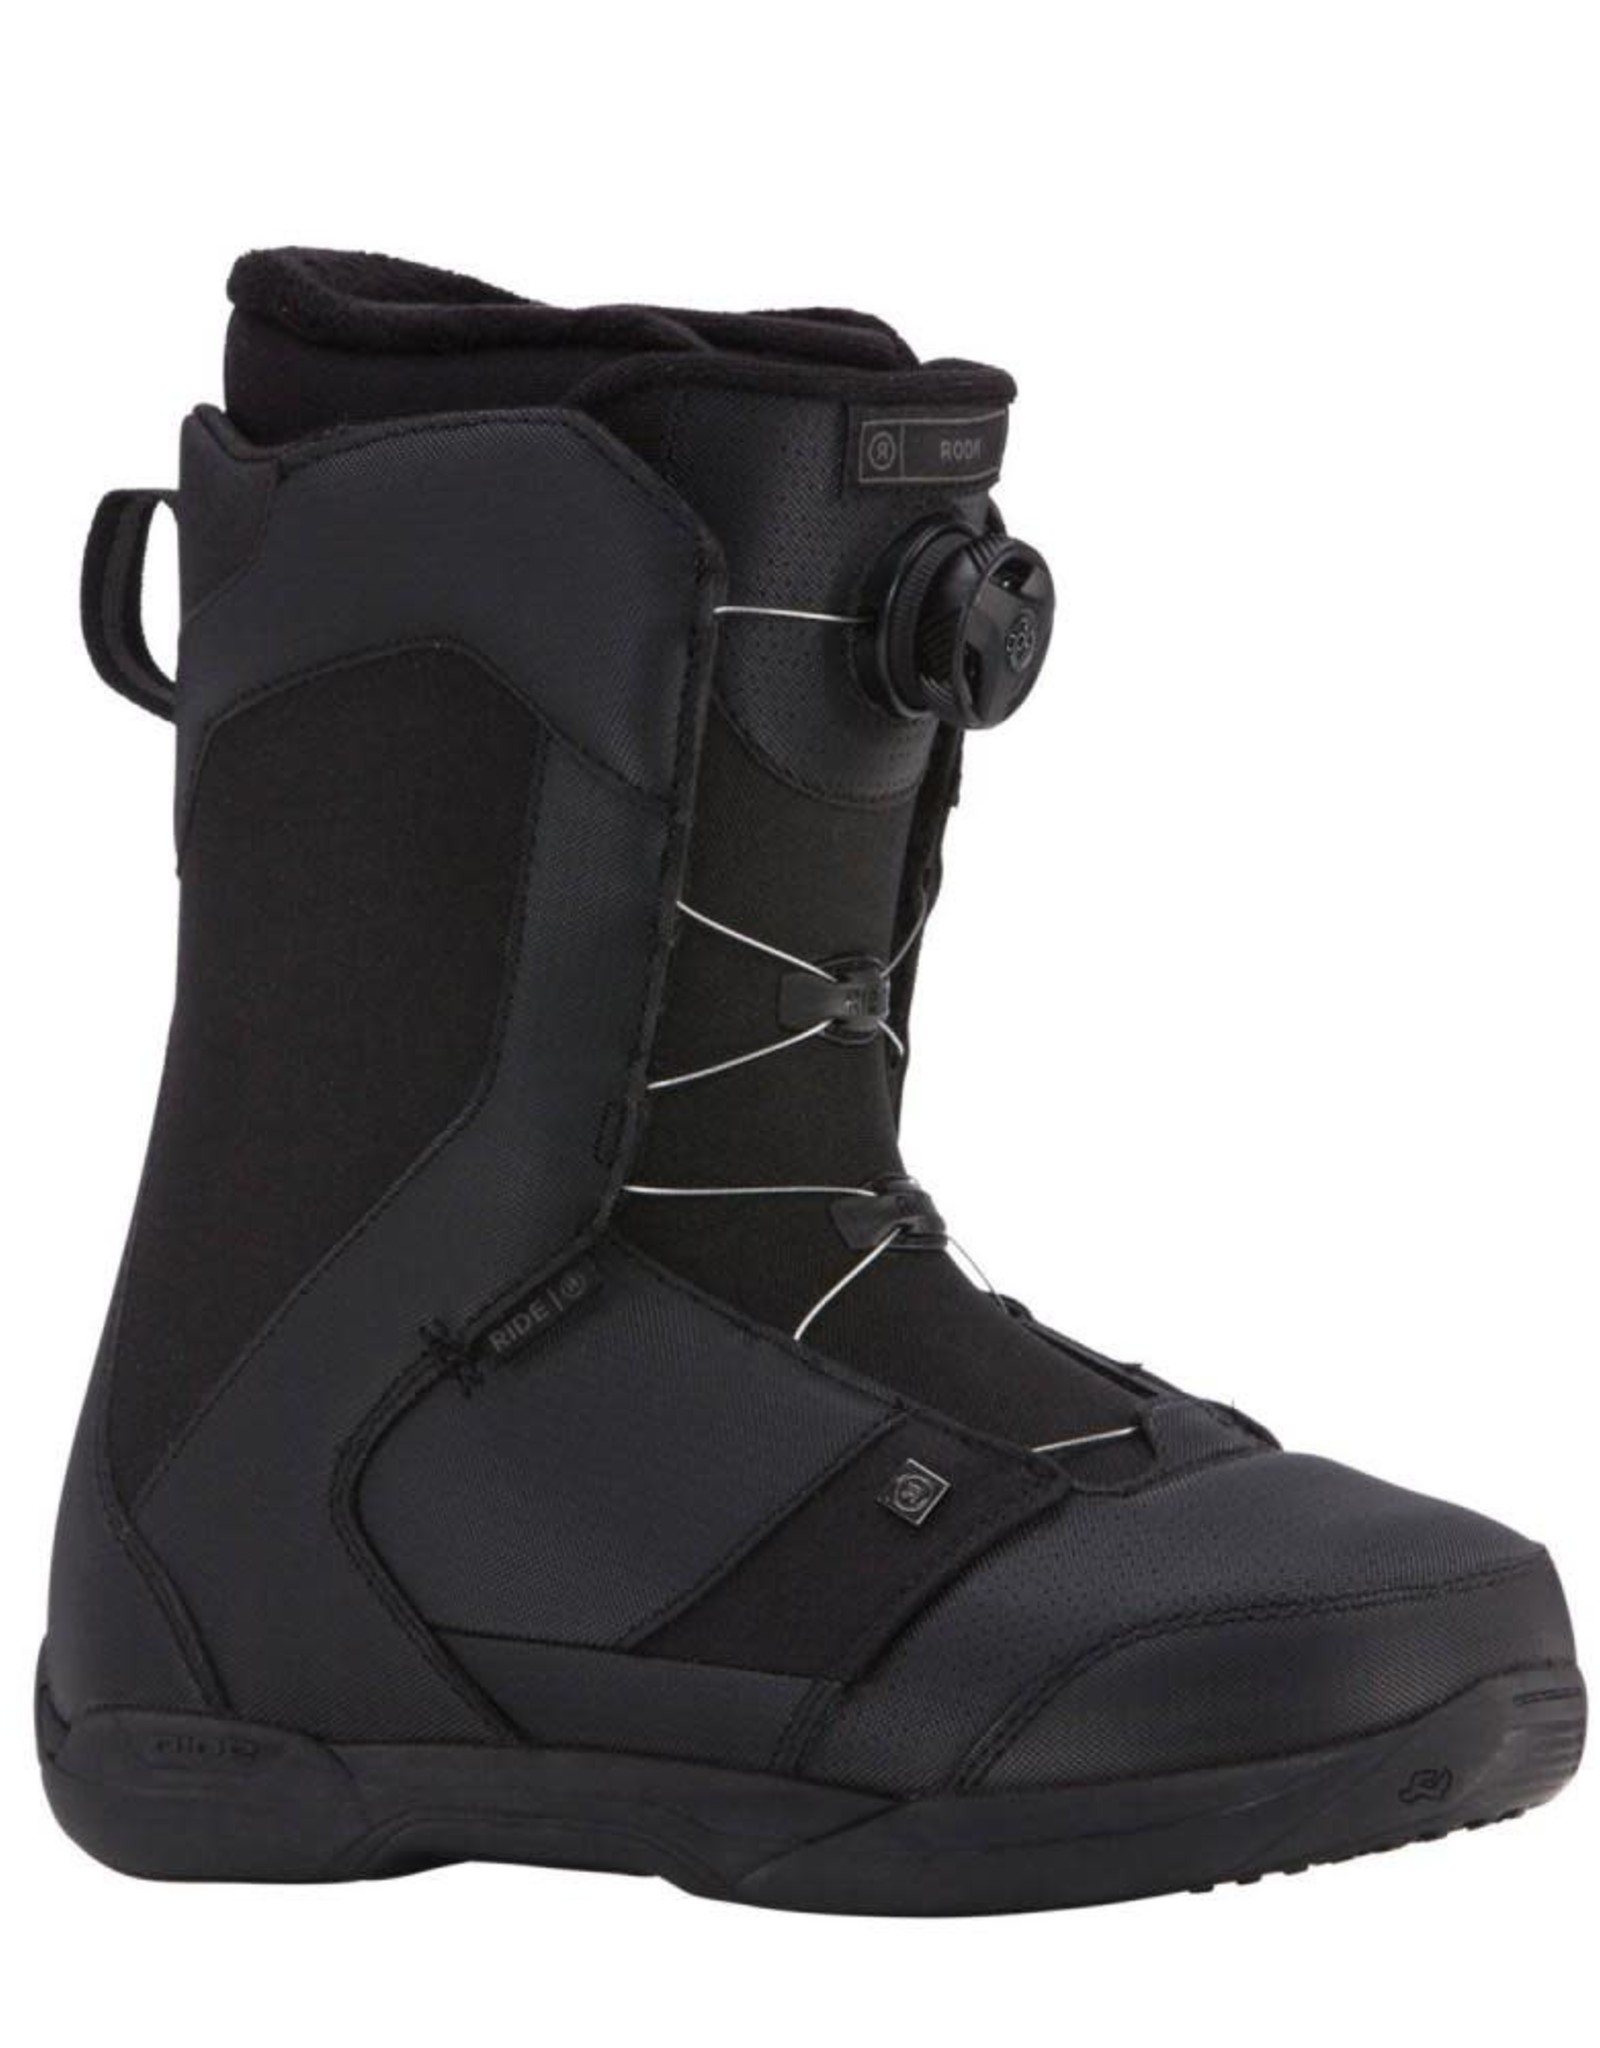 RIDE Ride Rook Snowboard Boot